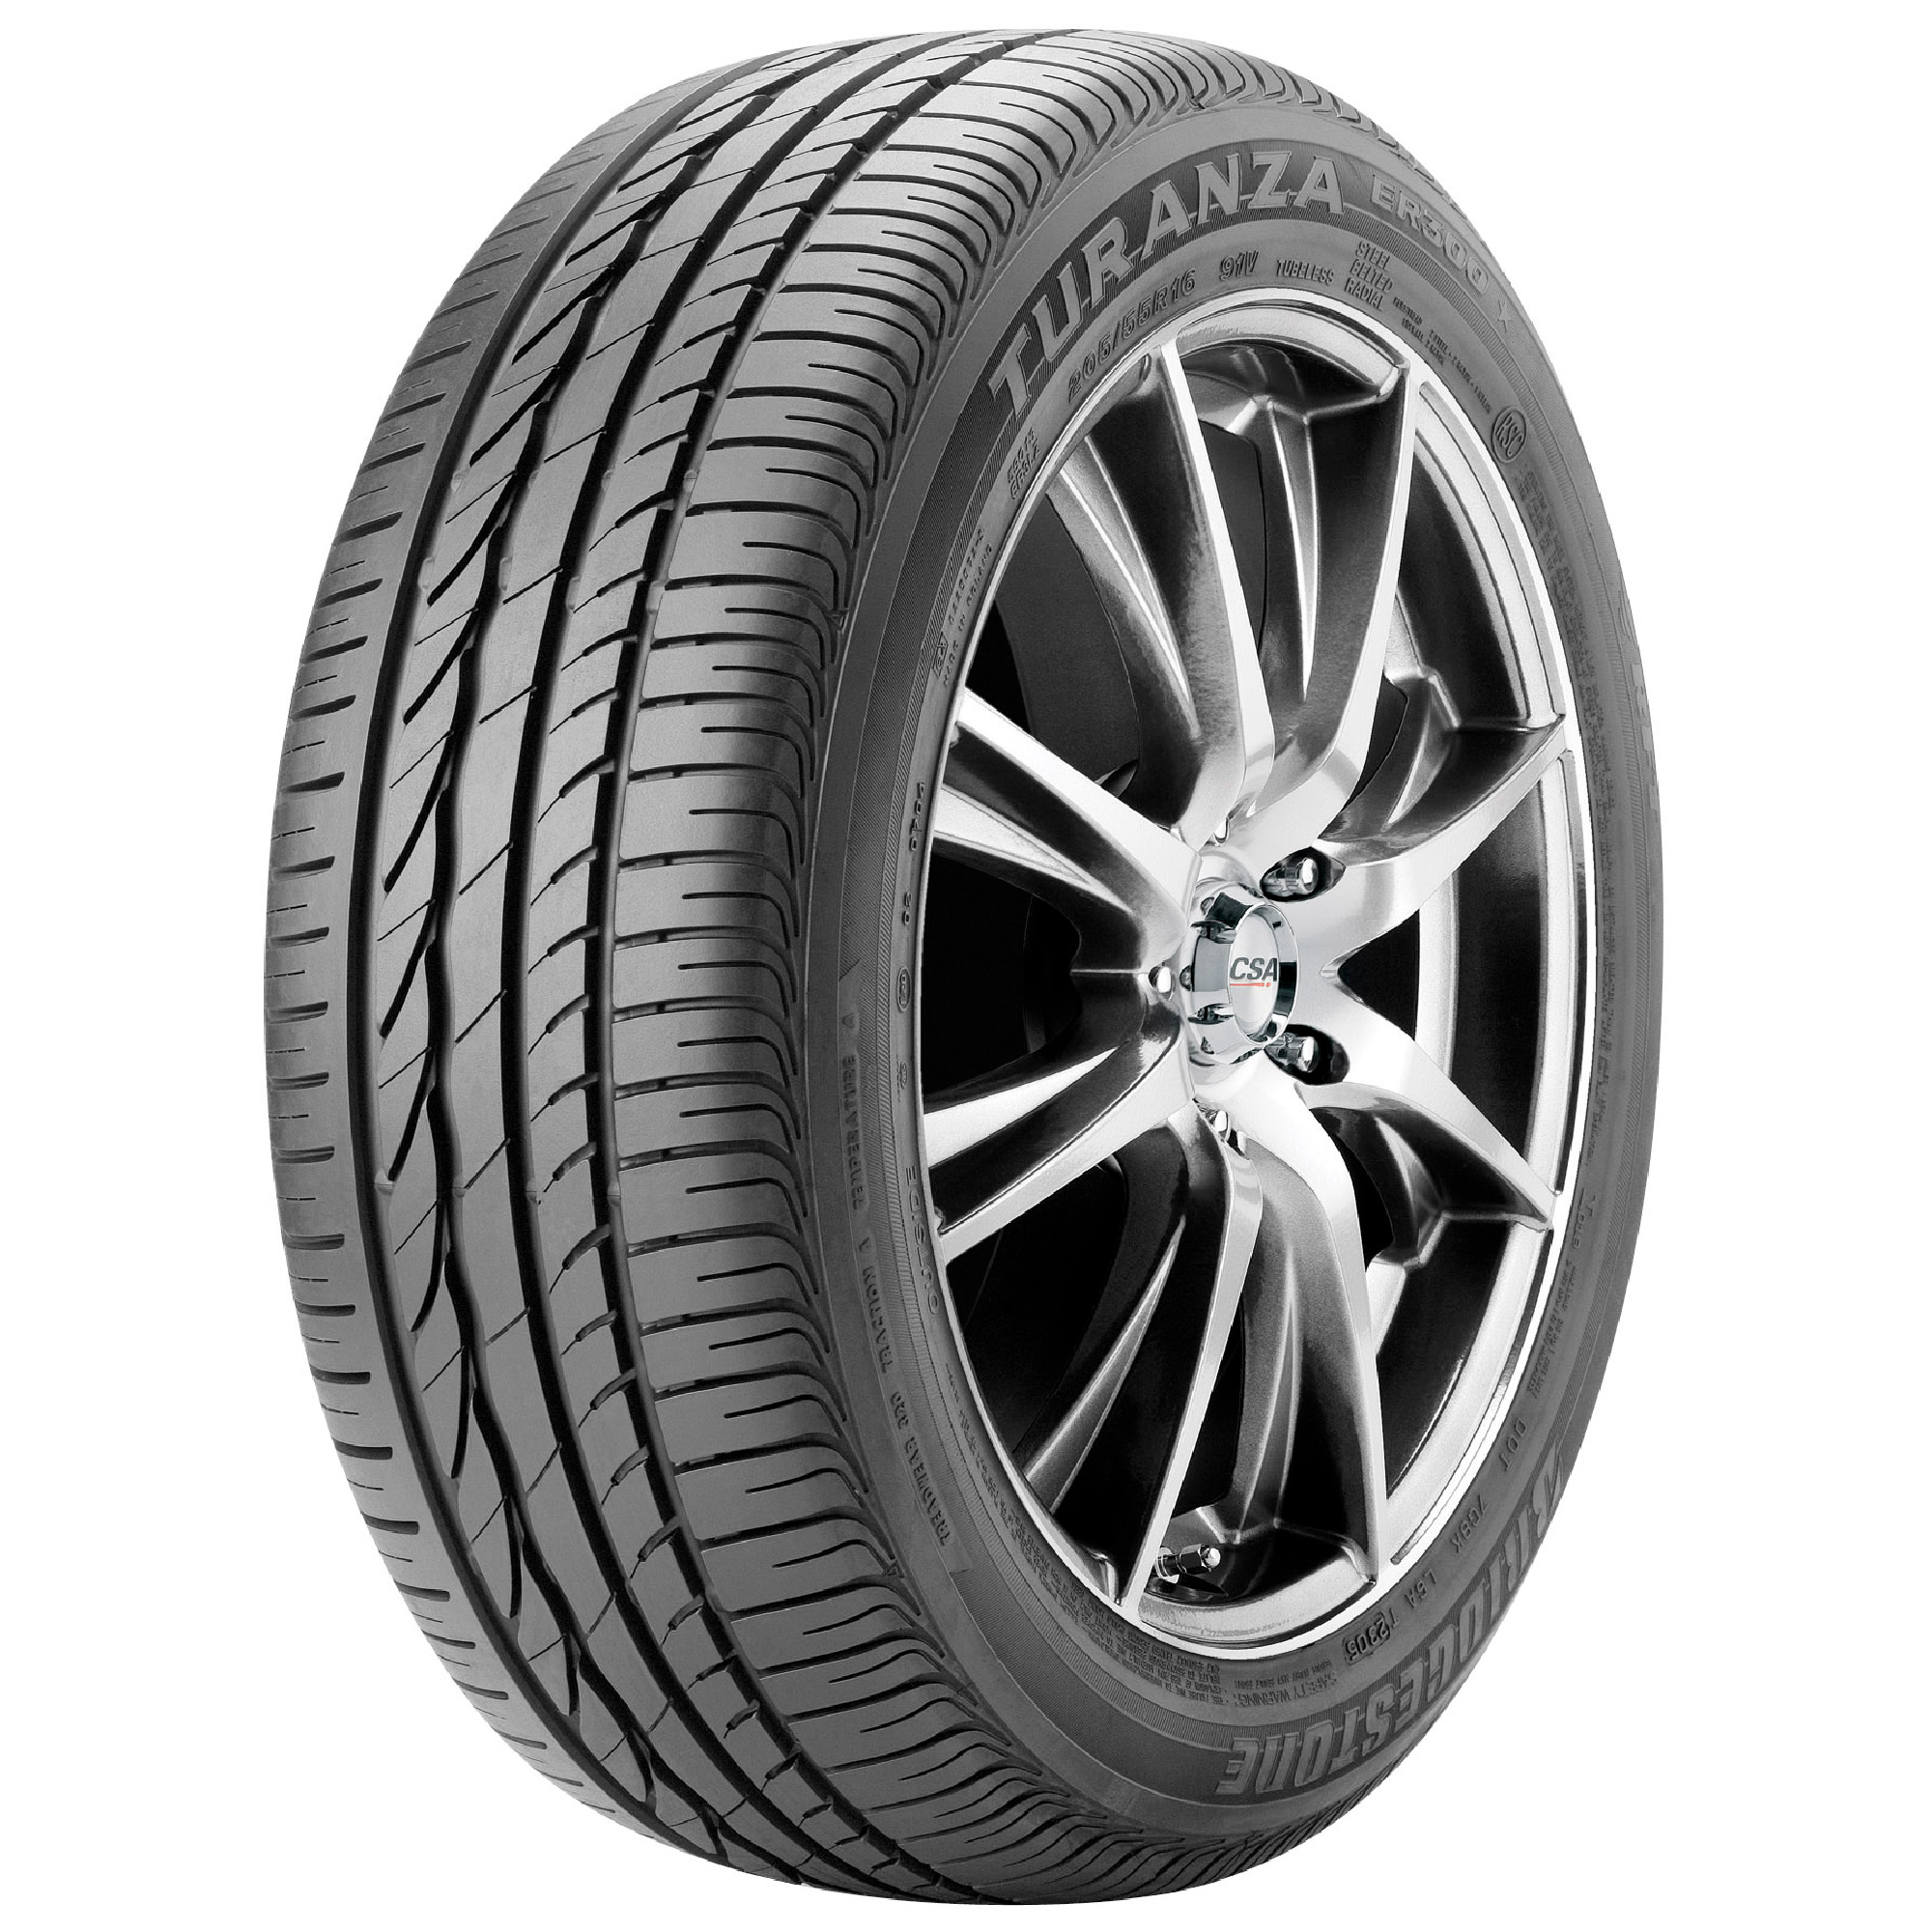 Turanza ER300 Run-Flat Technology Tyre